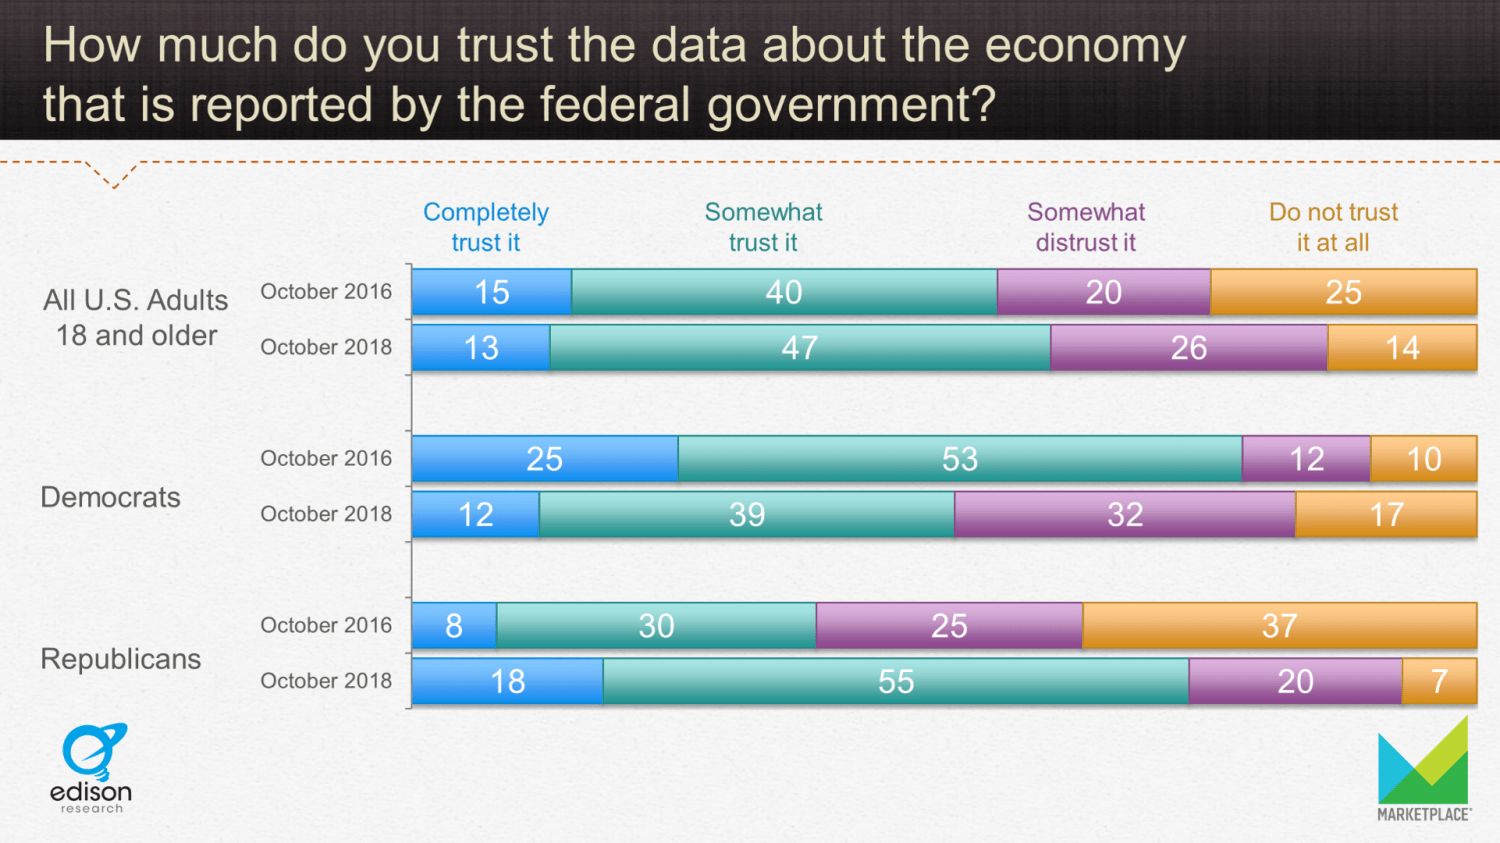 Trust in Economic Data by Party